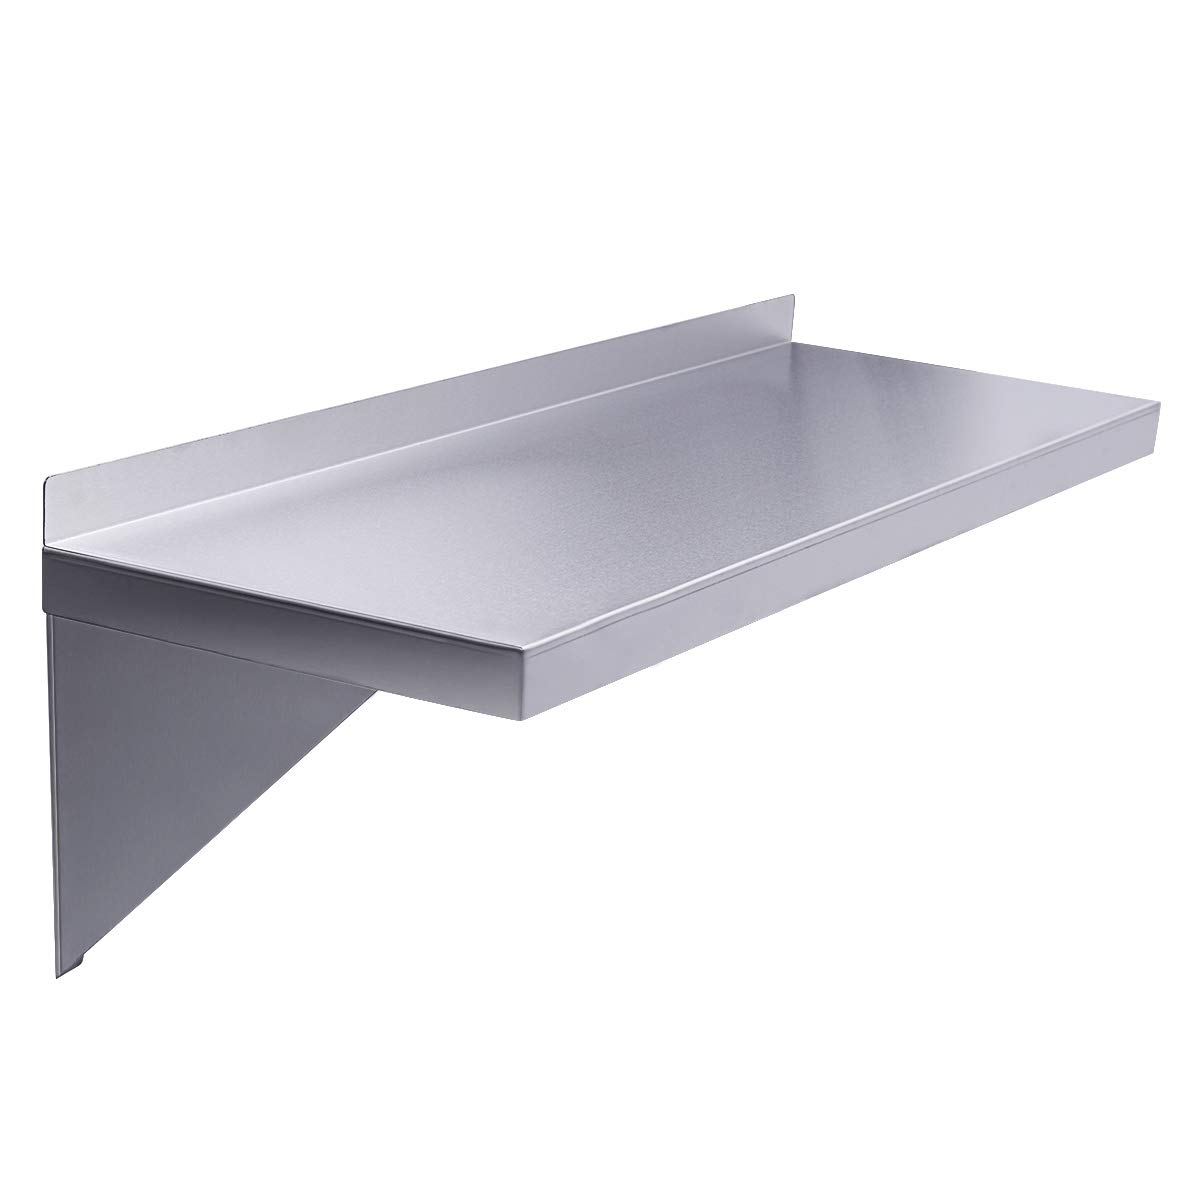 Tobbi Commercial Stainless Steel Kitchen Shelf Restaurant Bar CafeFloating Wall Mount Shelf 12''X36''